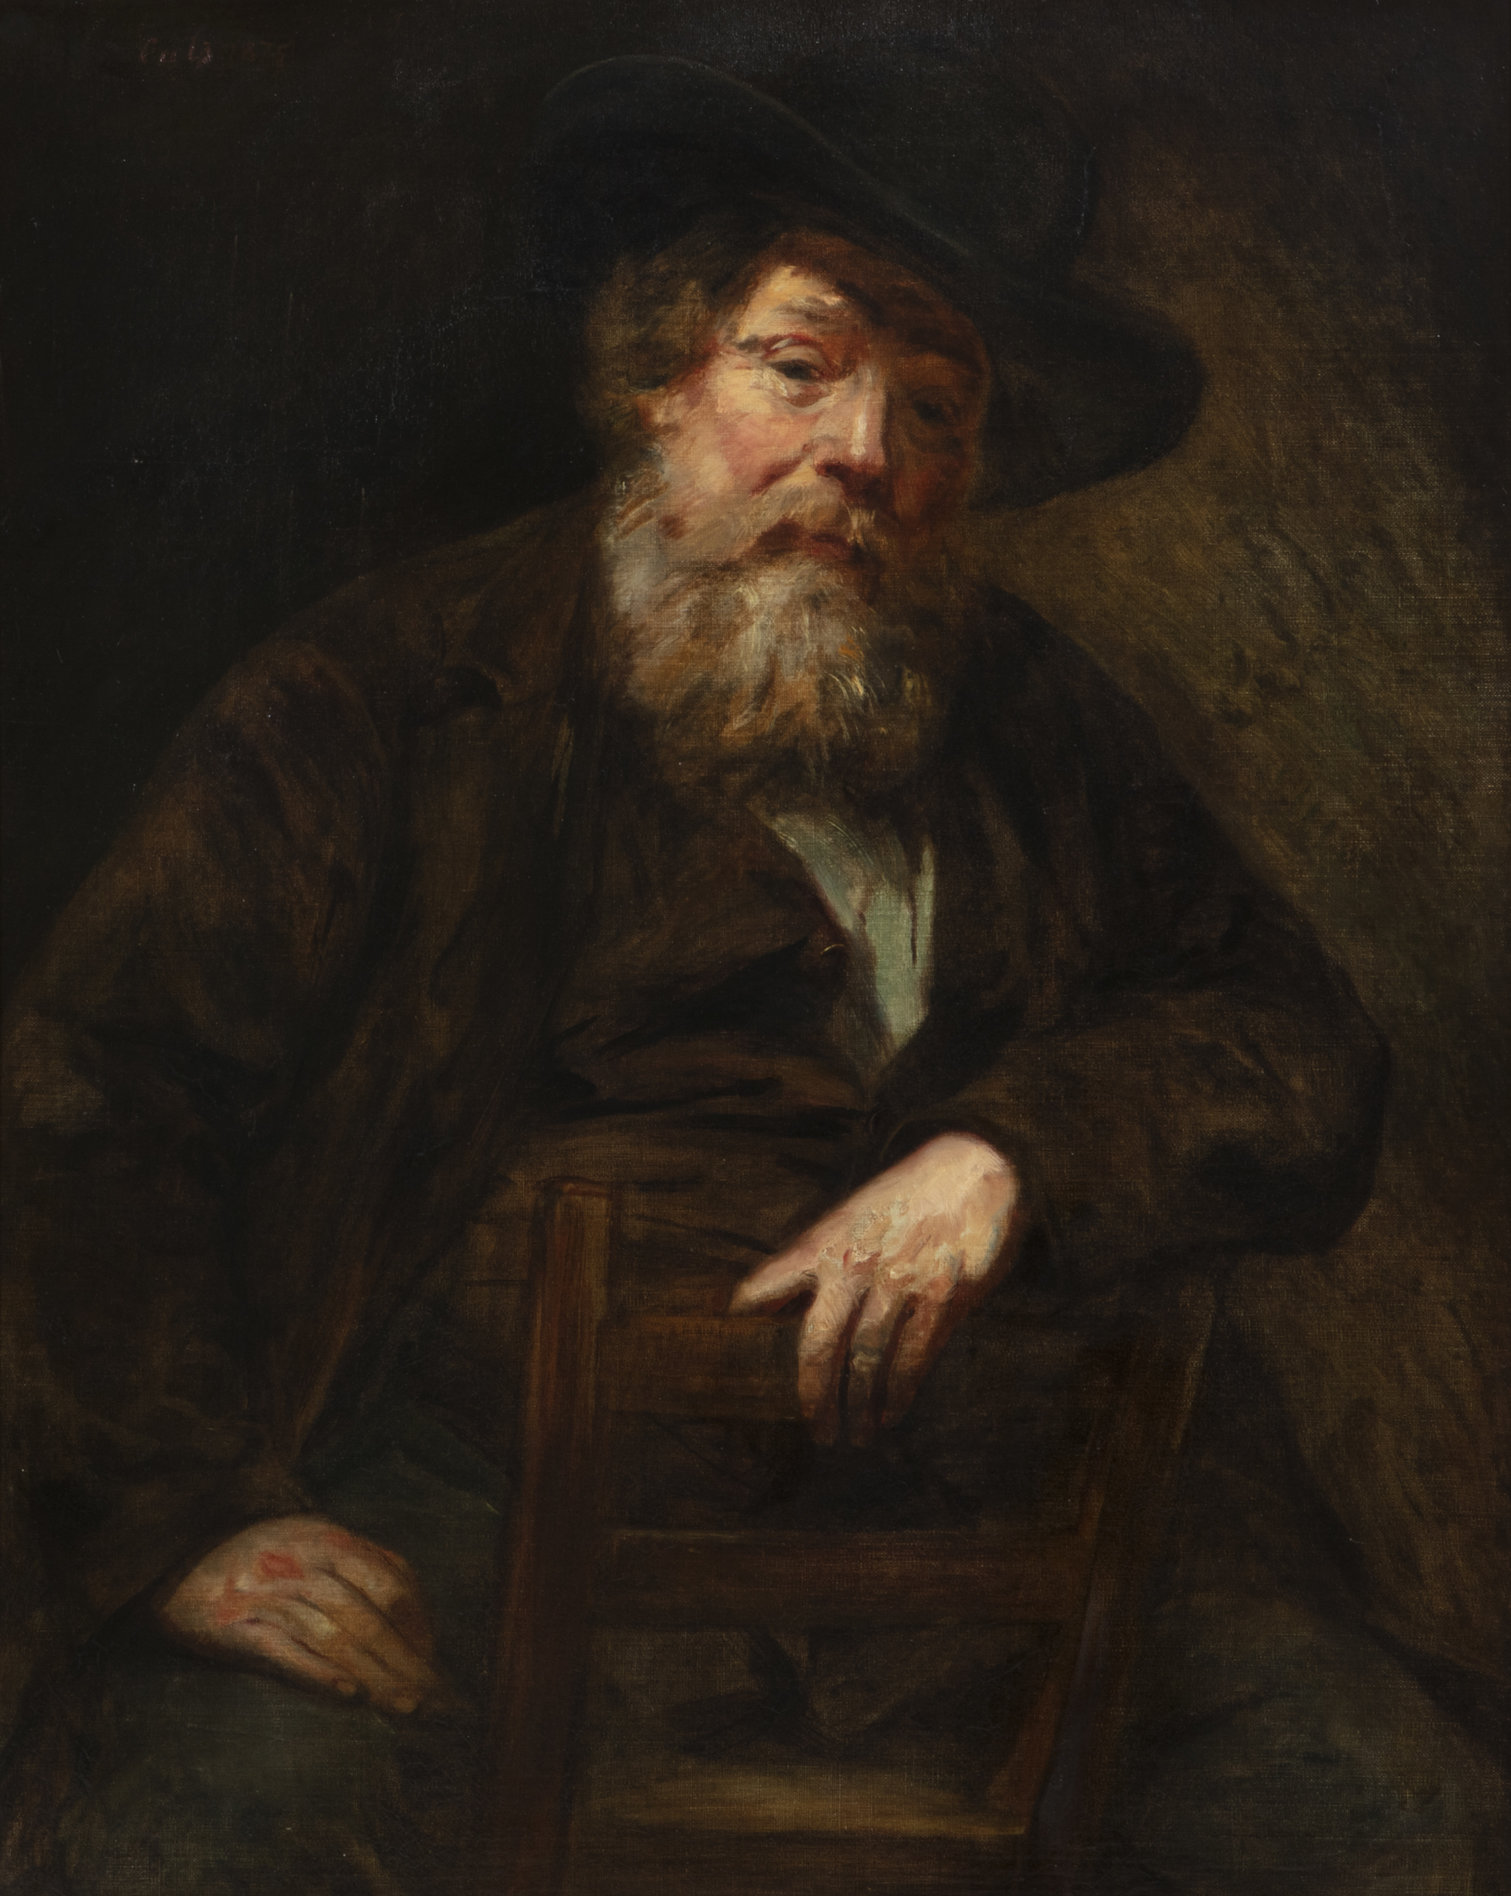 Oil on canvas by Adolphe-Felix Cals (French, 1810-1880), titled Portrait of an Elderly Man with a Beard and a Hat, signed and dated 'Cals 1875' upper left (est. $2,000-$3,000).